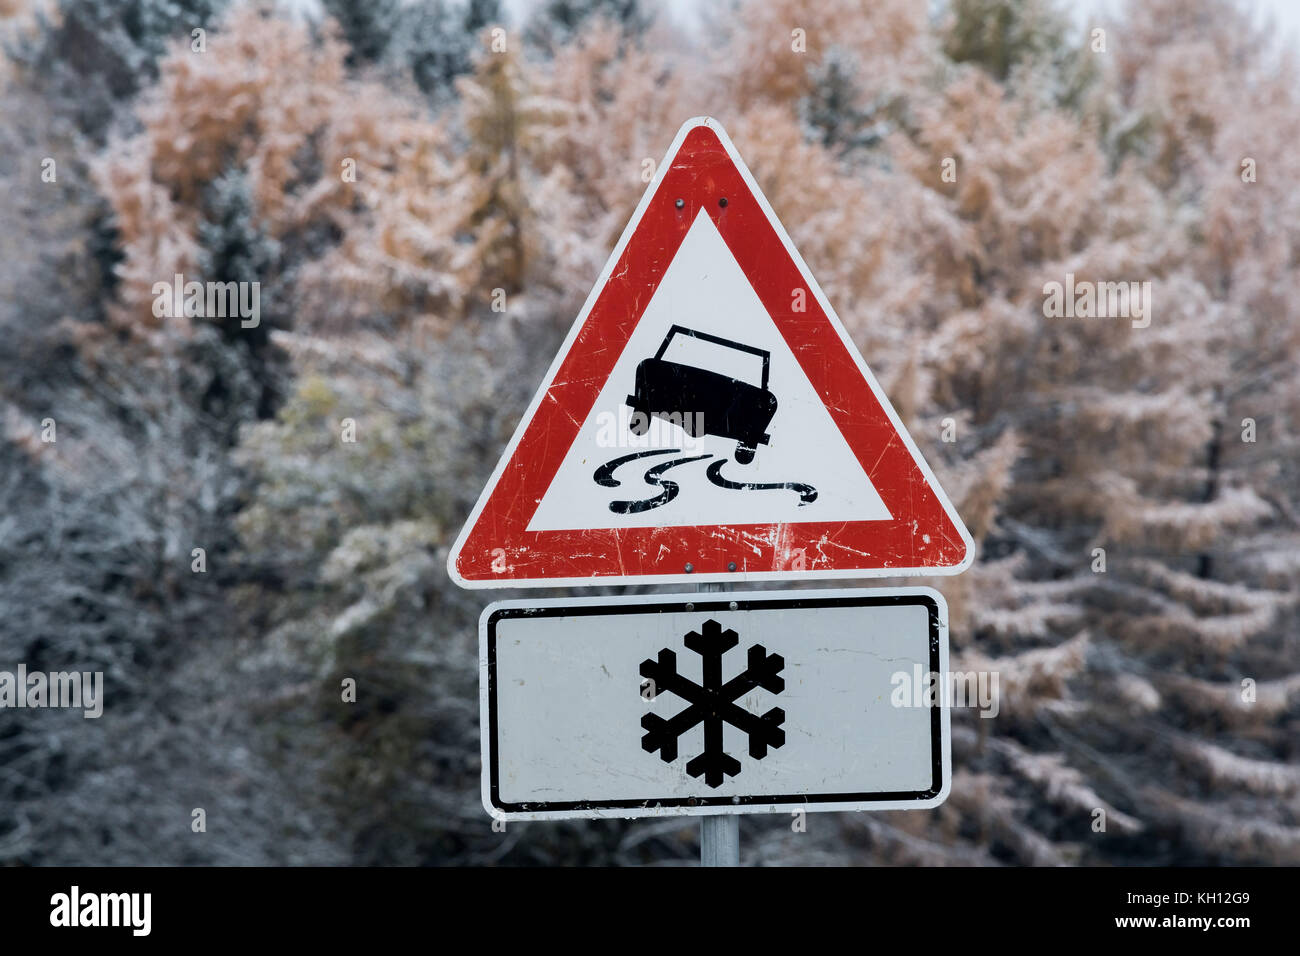 Upper Bavaria, Germany. 13th Nov, 2017. A traffic sign warning of packed snow on the street standing in front of - Stock Image